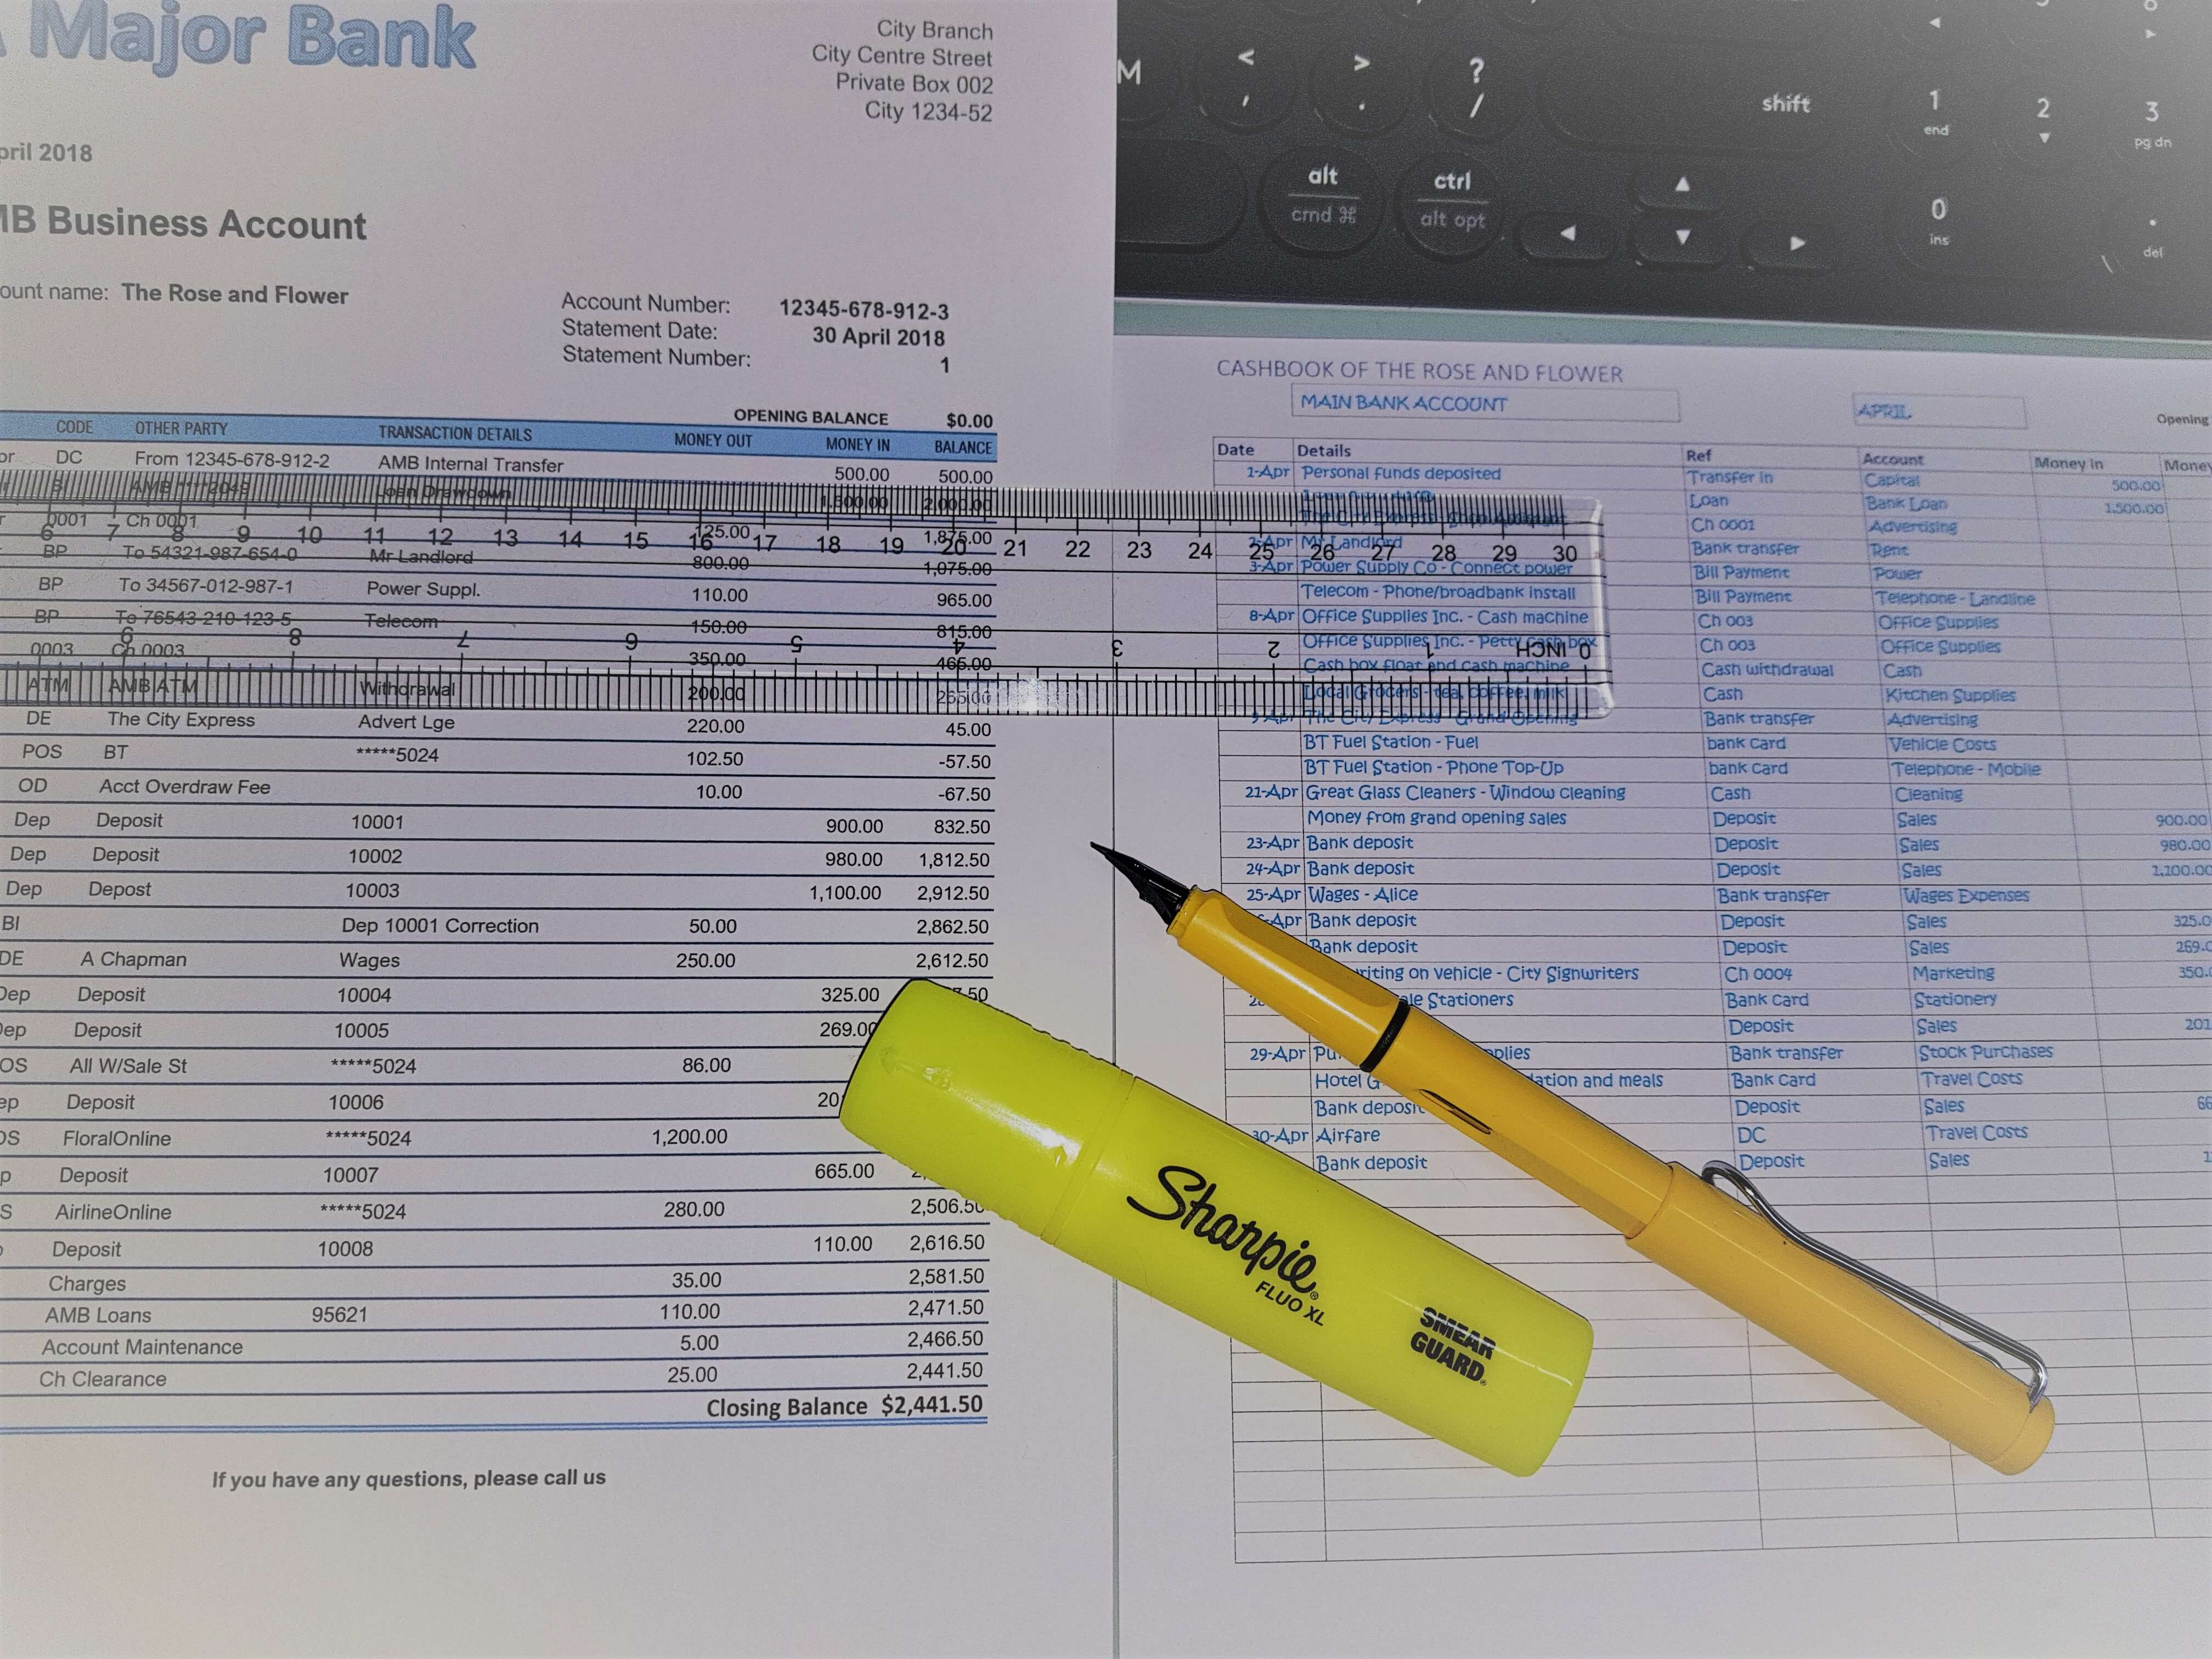 Bank statement and cashbook side by side to match transactions or highlight differences.